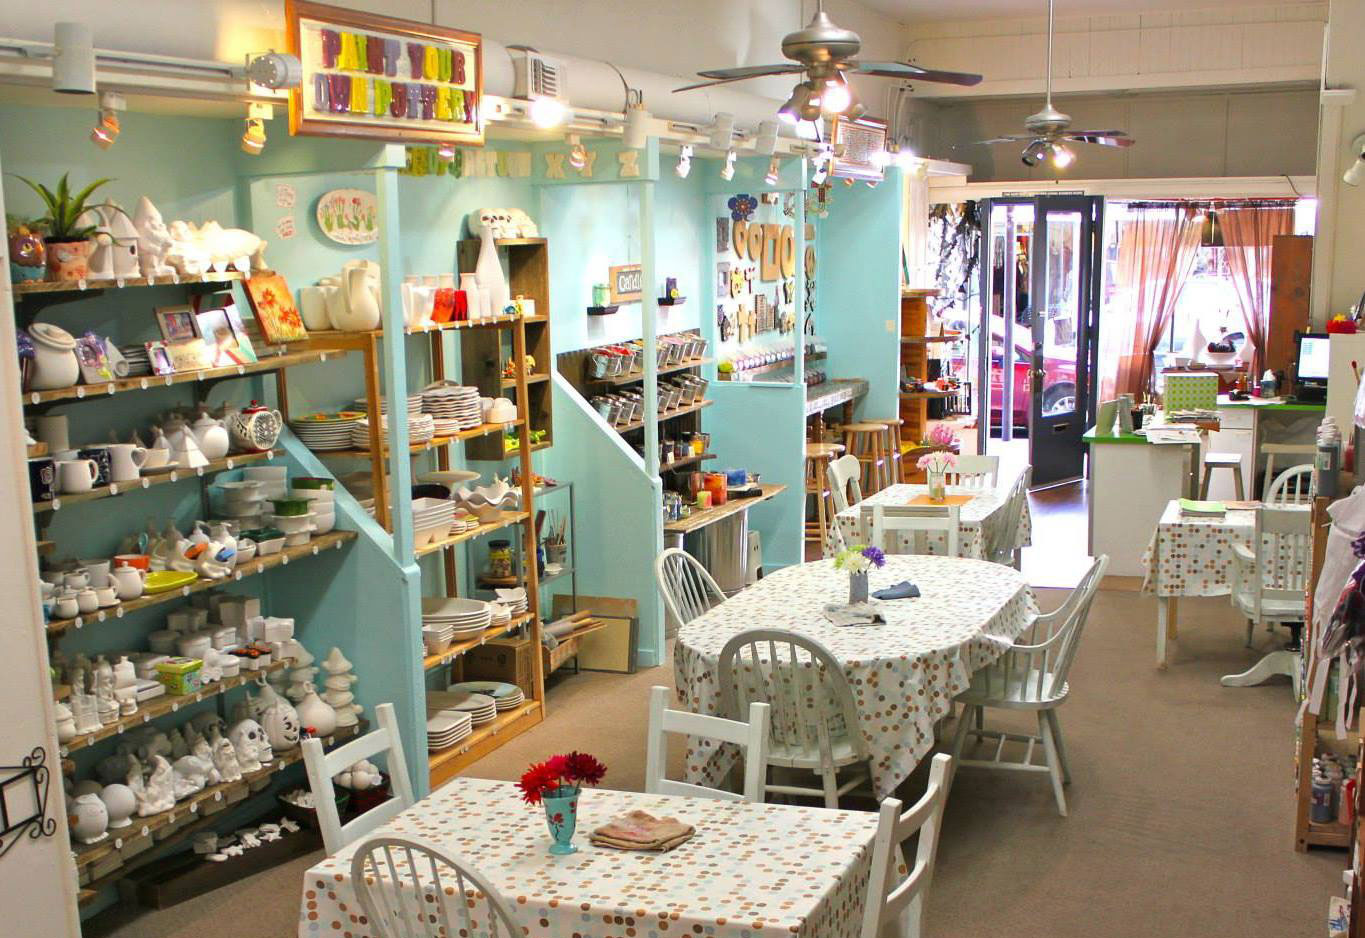 We Offer Pottery, Mosaics, Candle And Soap Making, DIY Bags And Pillows,  Handmade Muslin Dolls, And Canvas Art, We Also Have A Great Retail Section  With ...